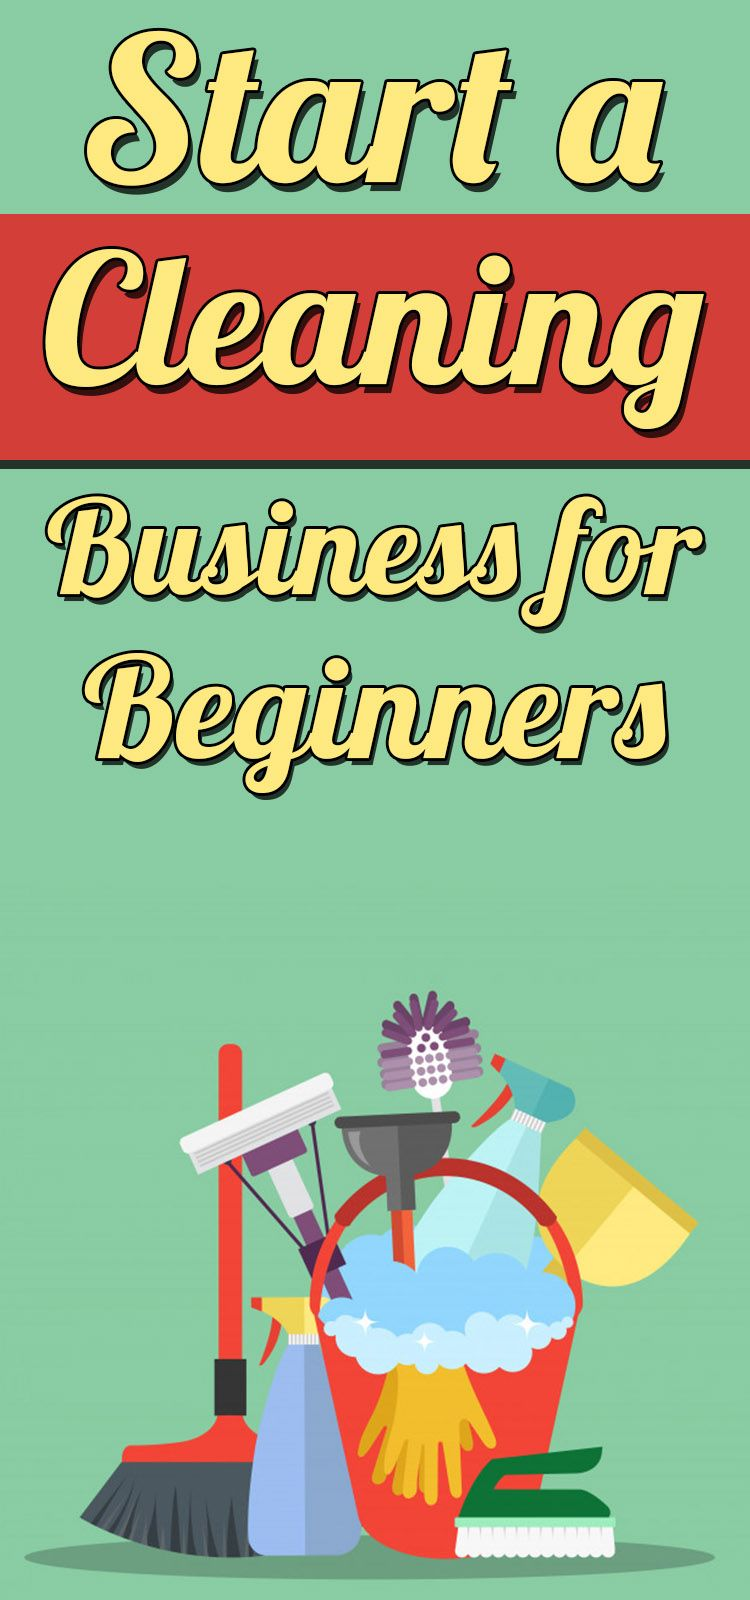 How to start a cleaning service Learn how to start a